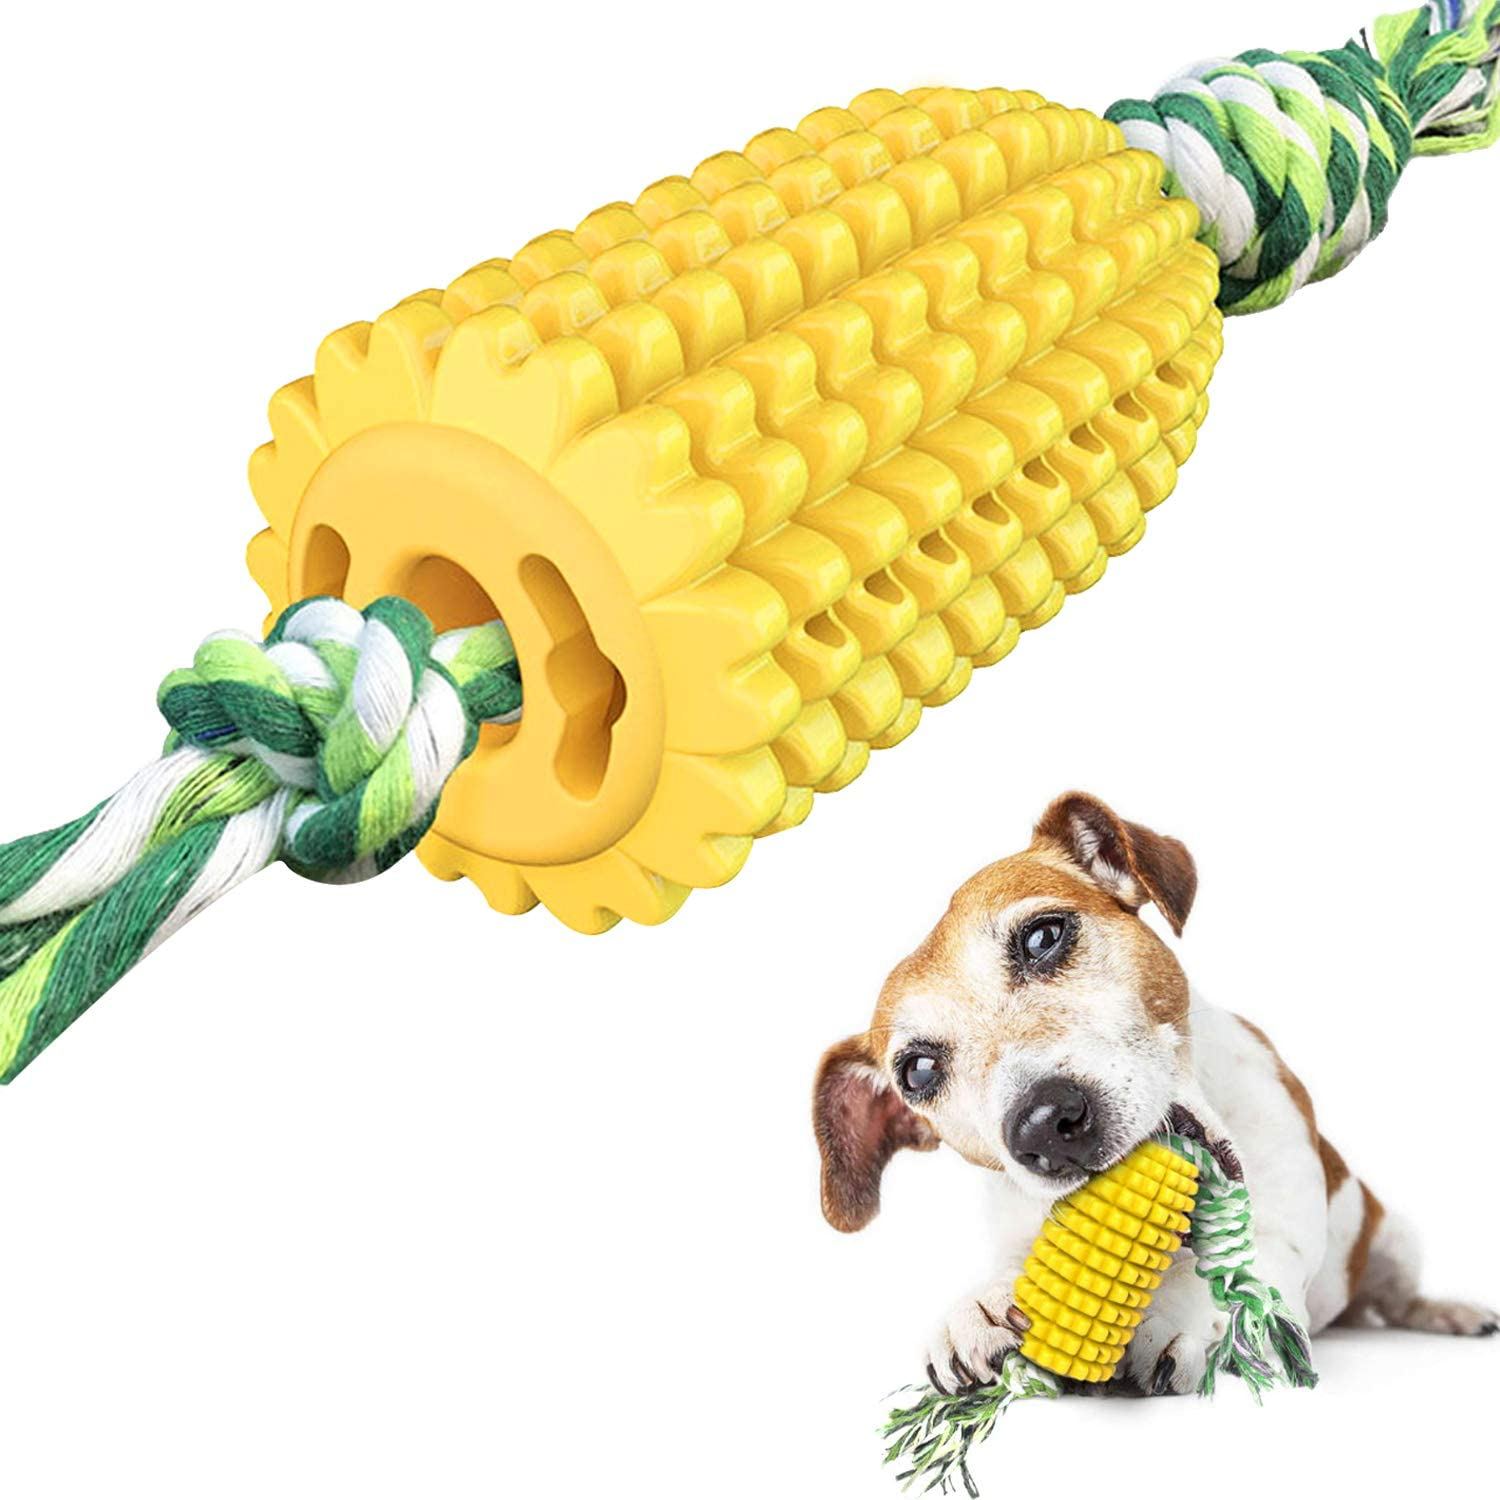 Corn Dog Chew Toys, Puppy Toothbrush Cleaning Stick for Large Medium Small Dogs, Food Grade Pet Toys